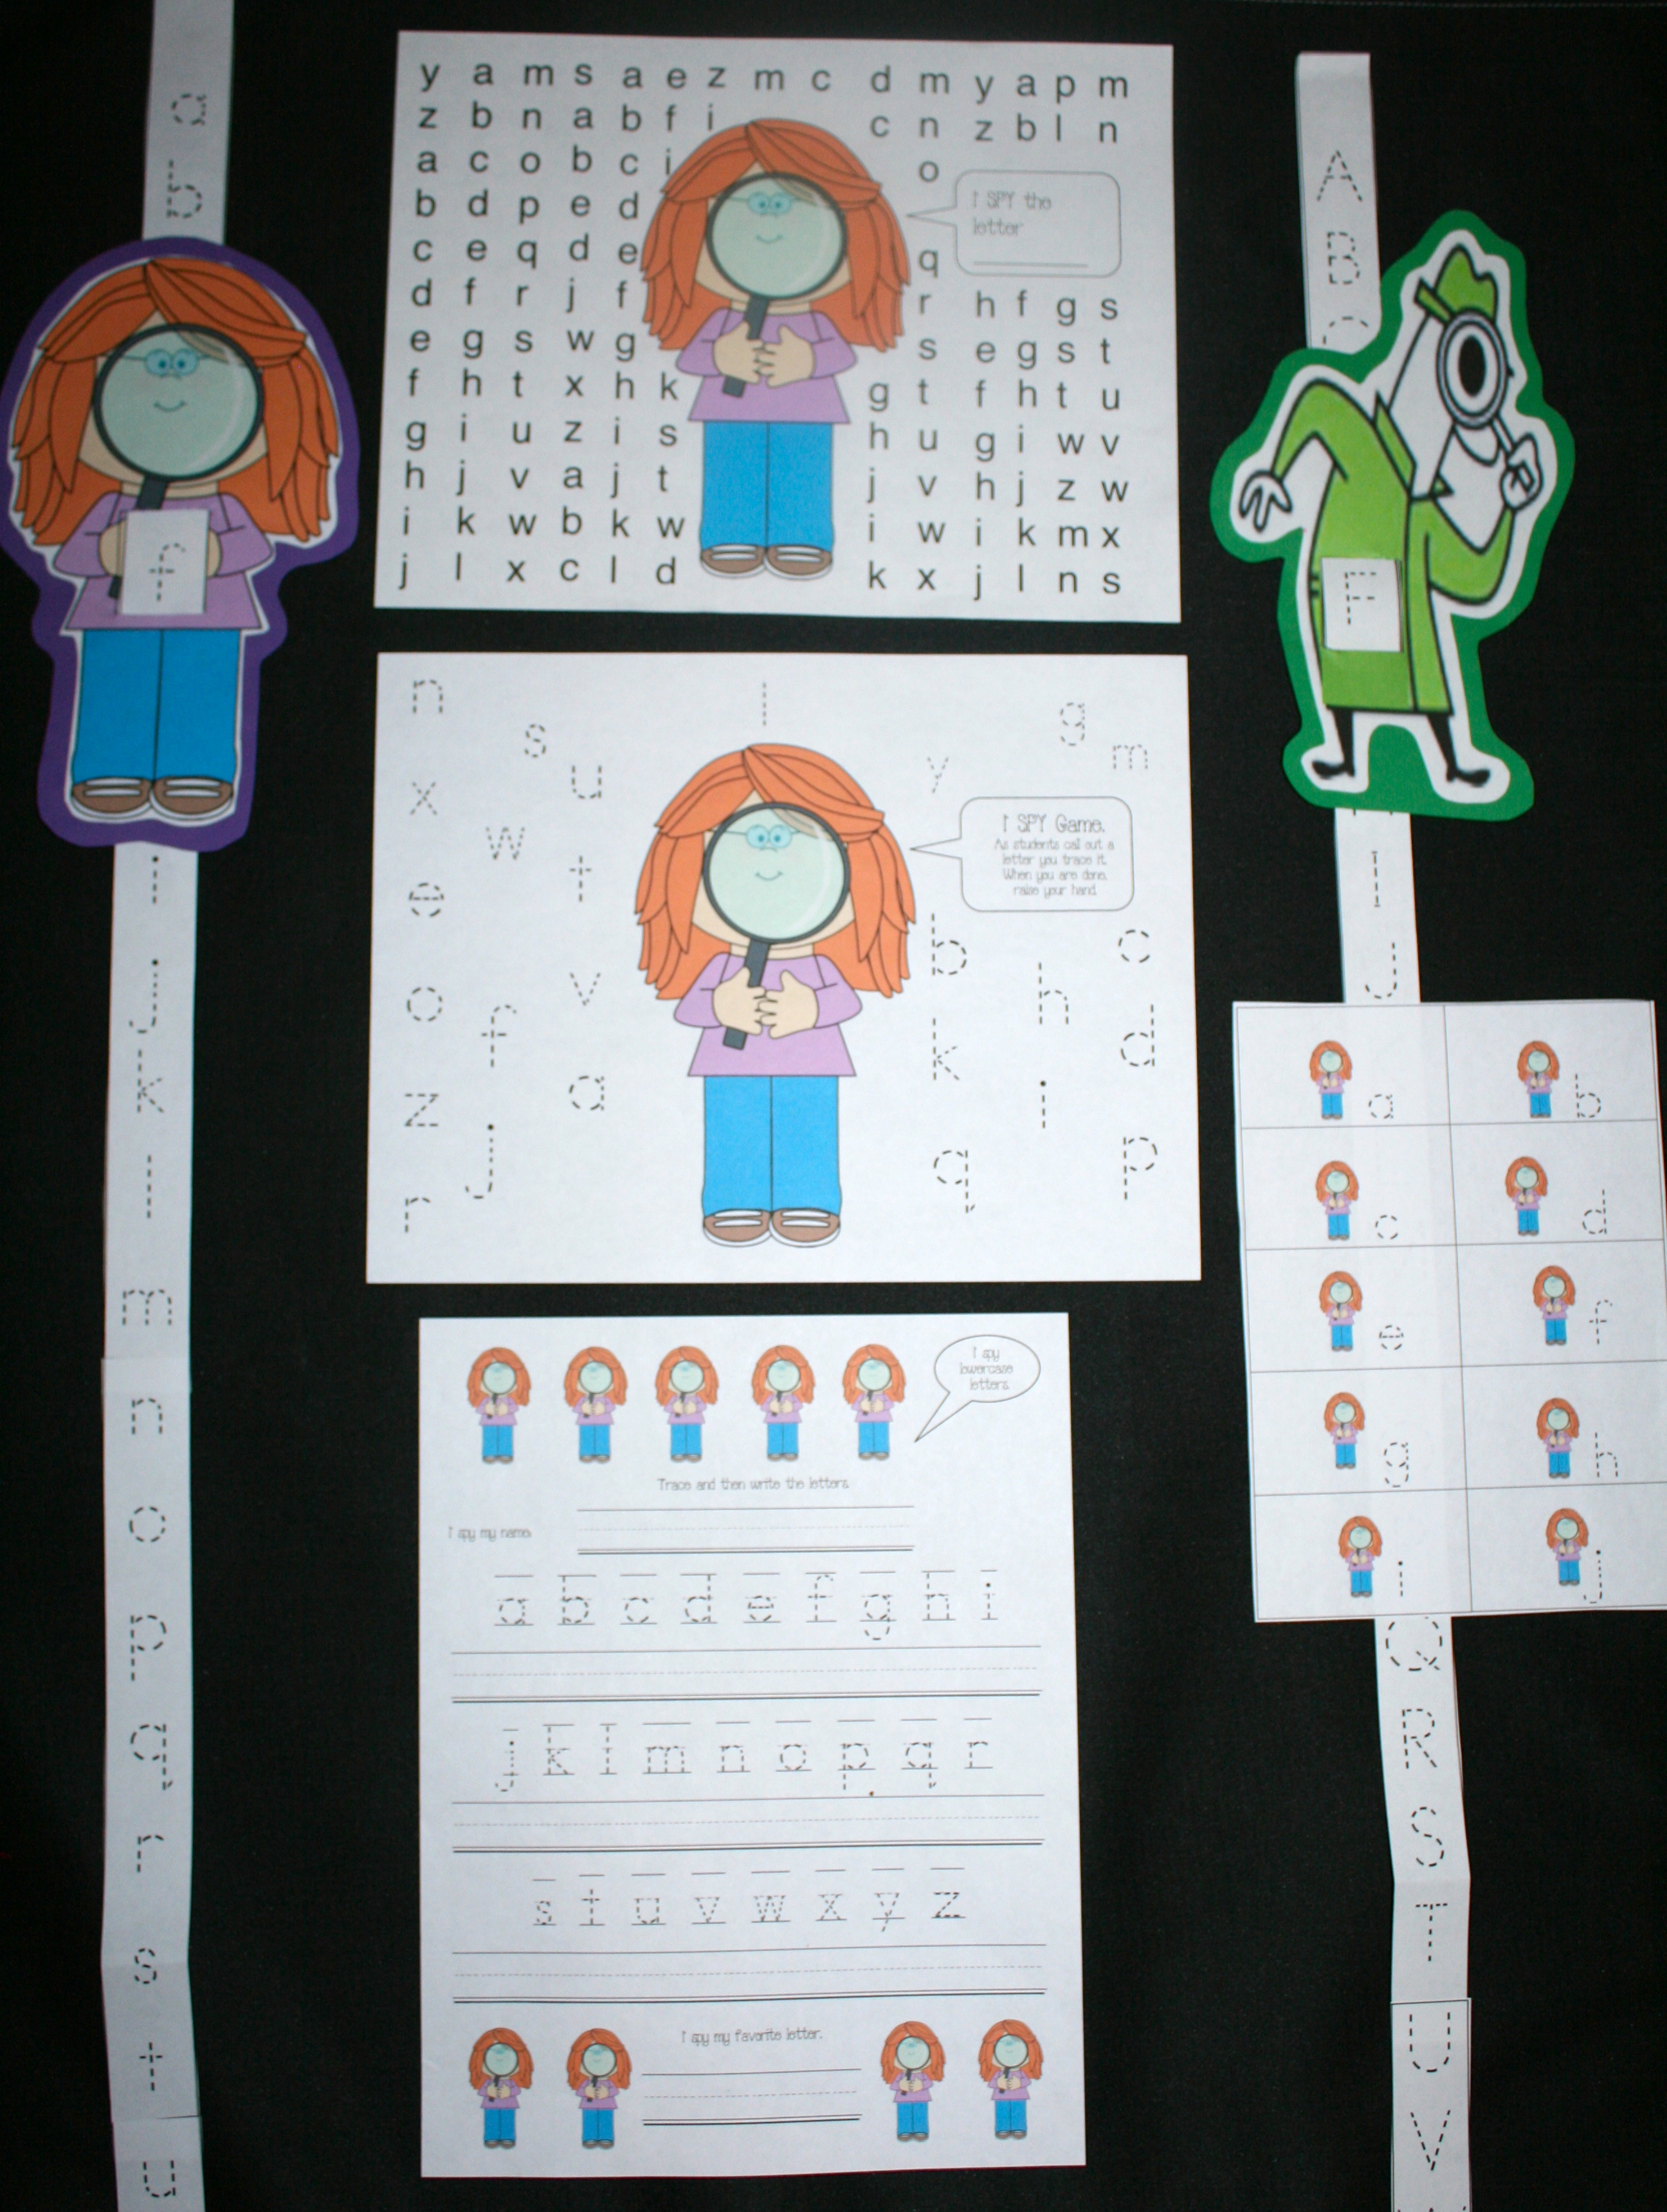 common core lessons for kindergarten, common core lessons for 1st grade, letter activities, letter lessons, alphabet activities, alphabet lessons, letter identification, letter assessments, traceable alphabet cards, alphabet flashcards, alphabet bookls, upper and lowercase letter identification activities, traceable alphabet worksheets, I spy upper and lowercase letter activities, alphabet letter sliders, alphabet games,